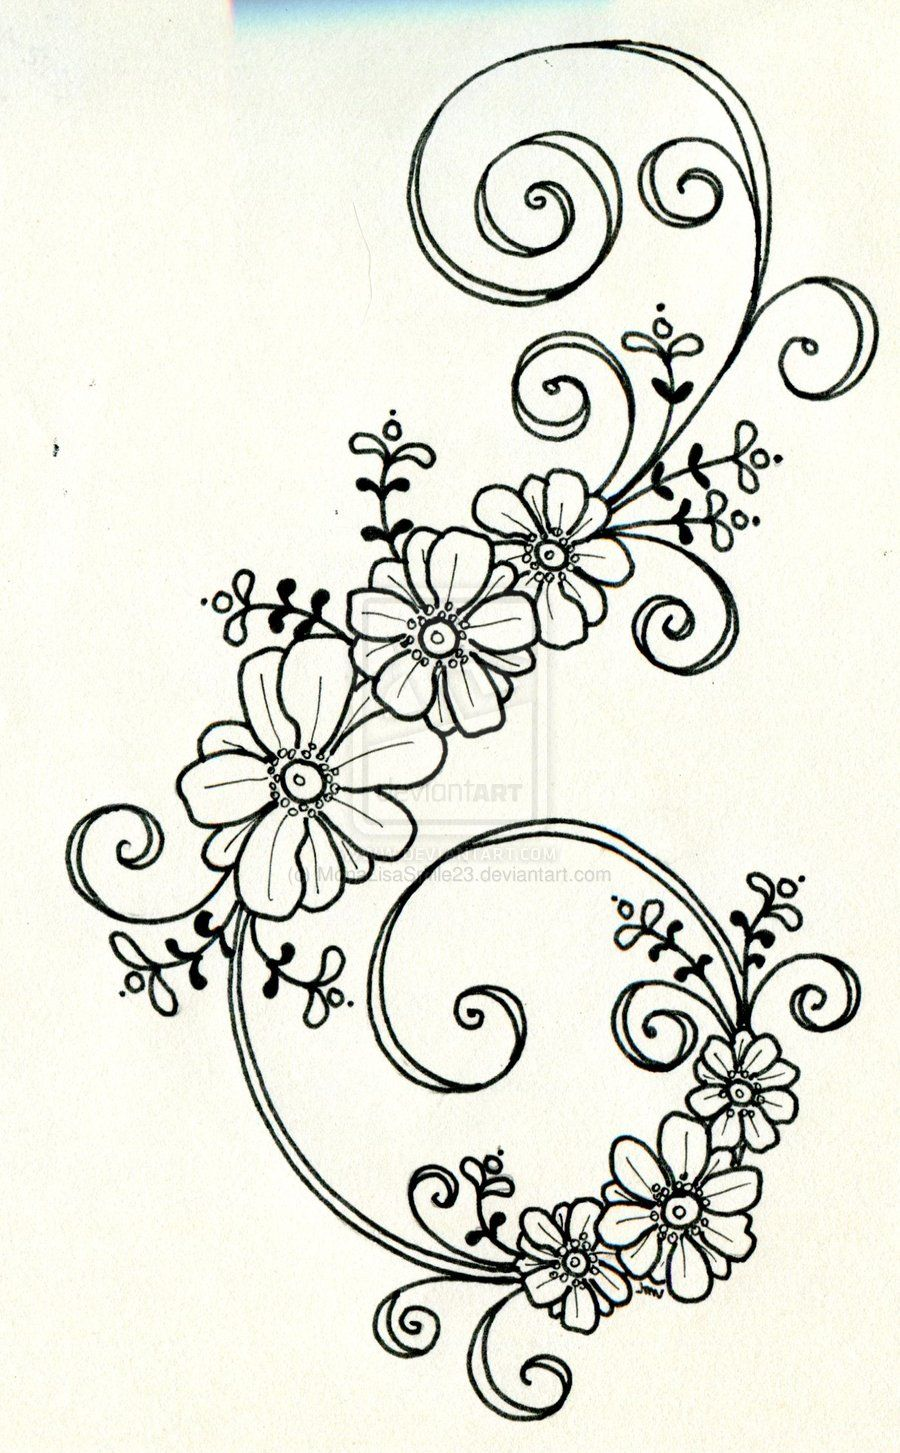 flower zentangle designs - Google Search | Sketches | Pinterest ...